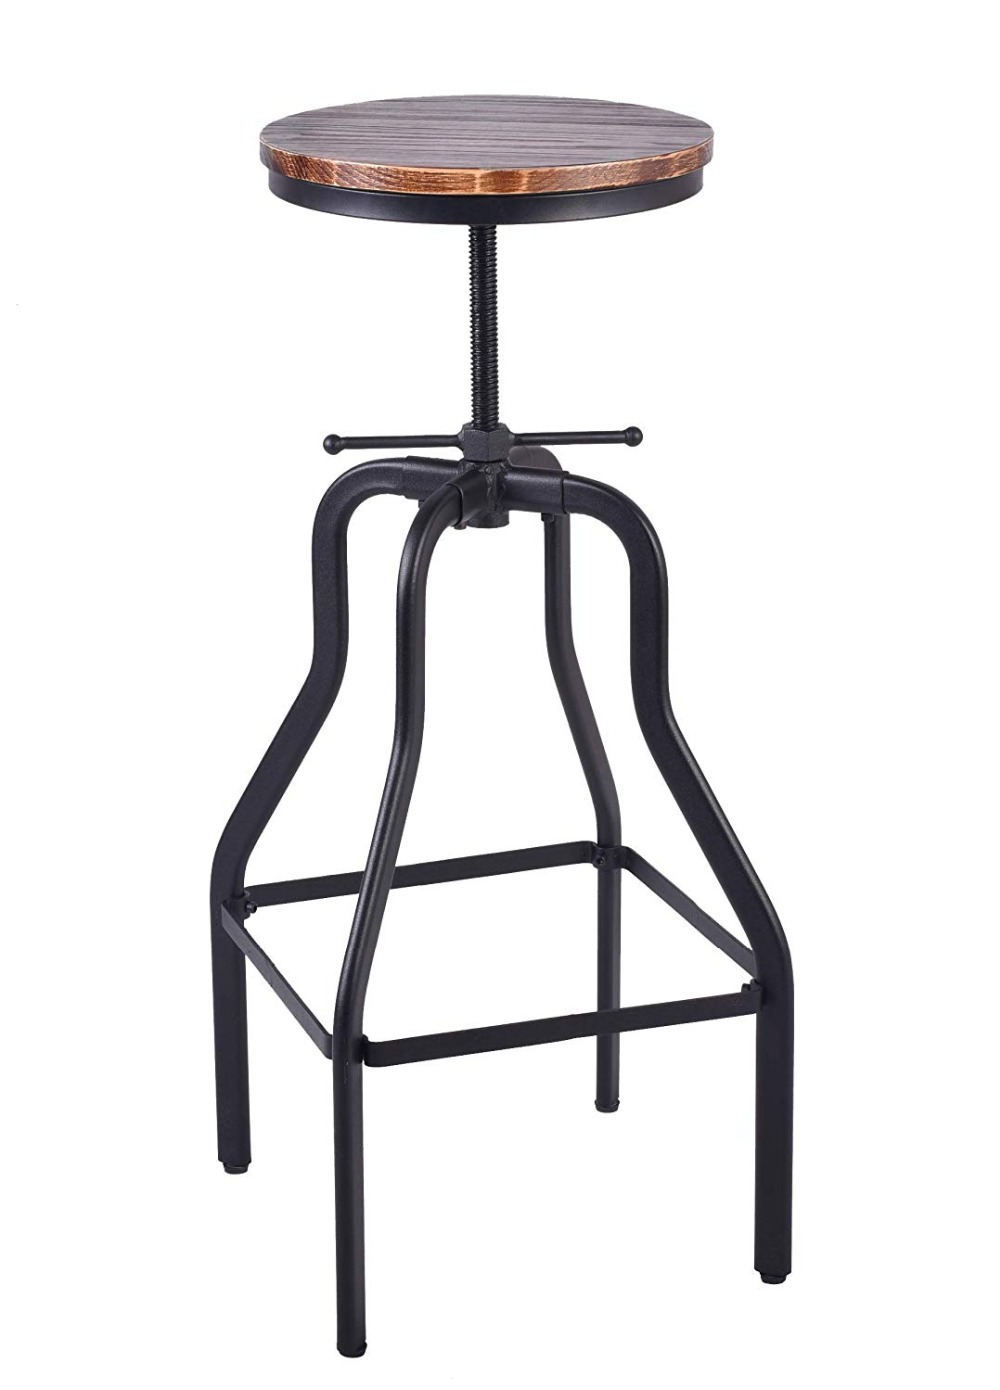 Vintage Bar Stool Round Swivel Wood Seat and Metal Height Adjustable Industrial Look Swivel Bar Chairs industrial bar chairs furniture design metal adjustable height back rest swivel chair tractor saddle bar stool chair seat